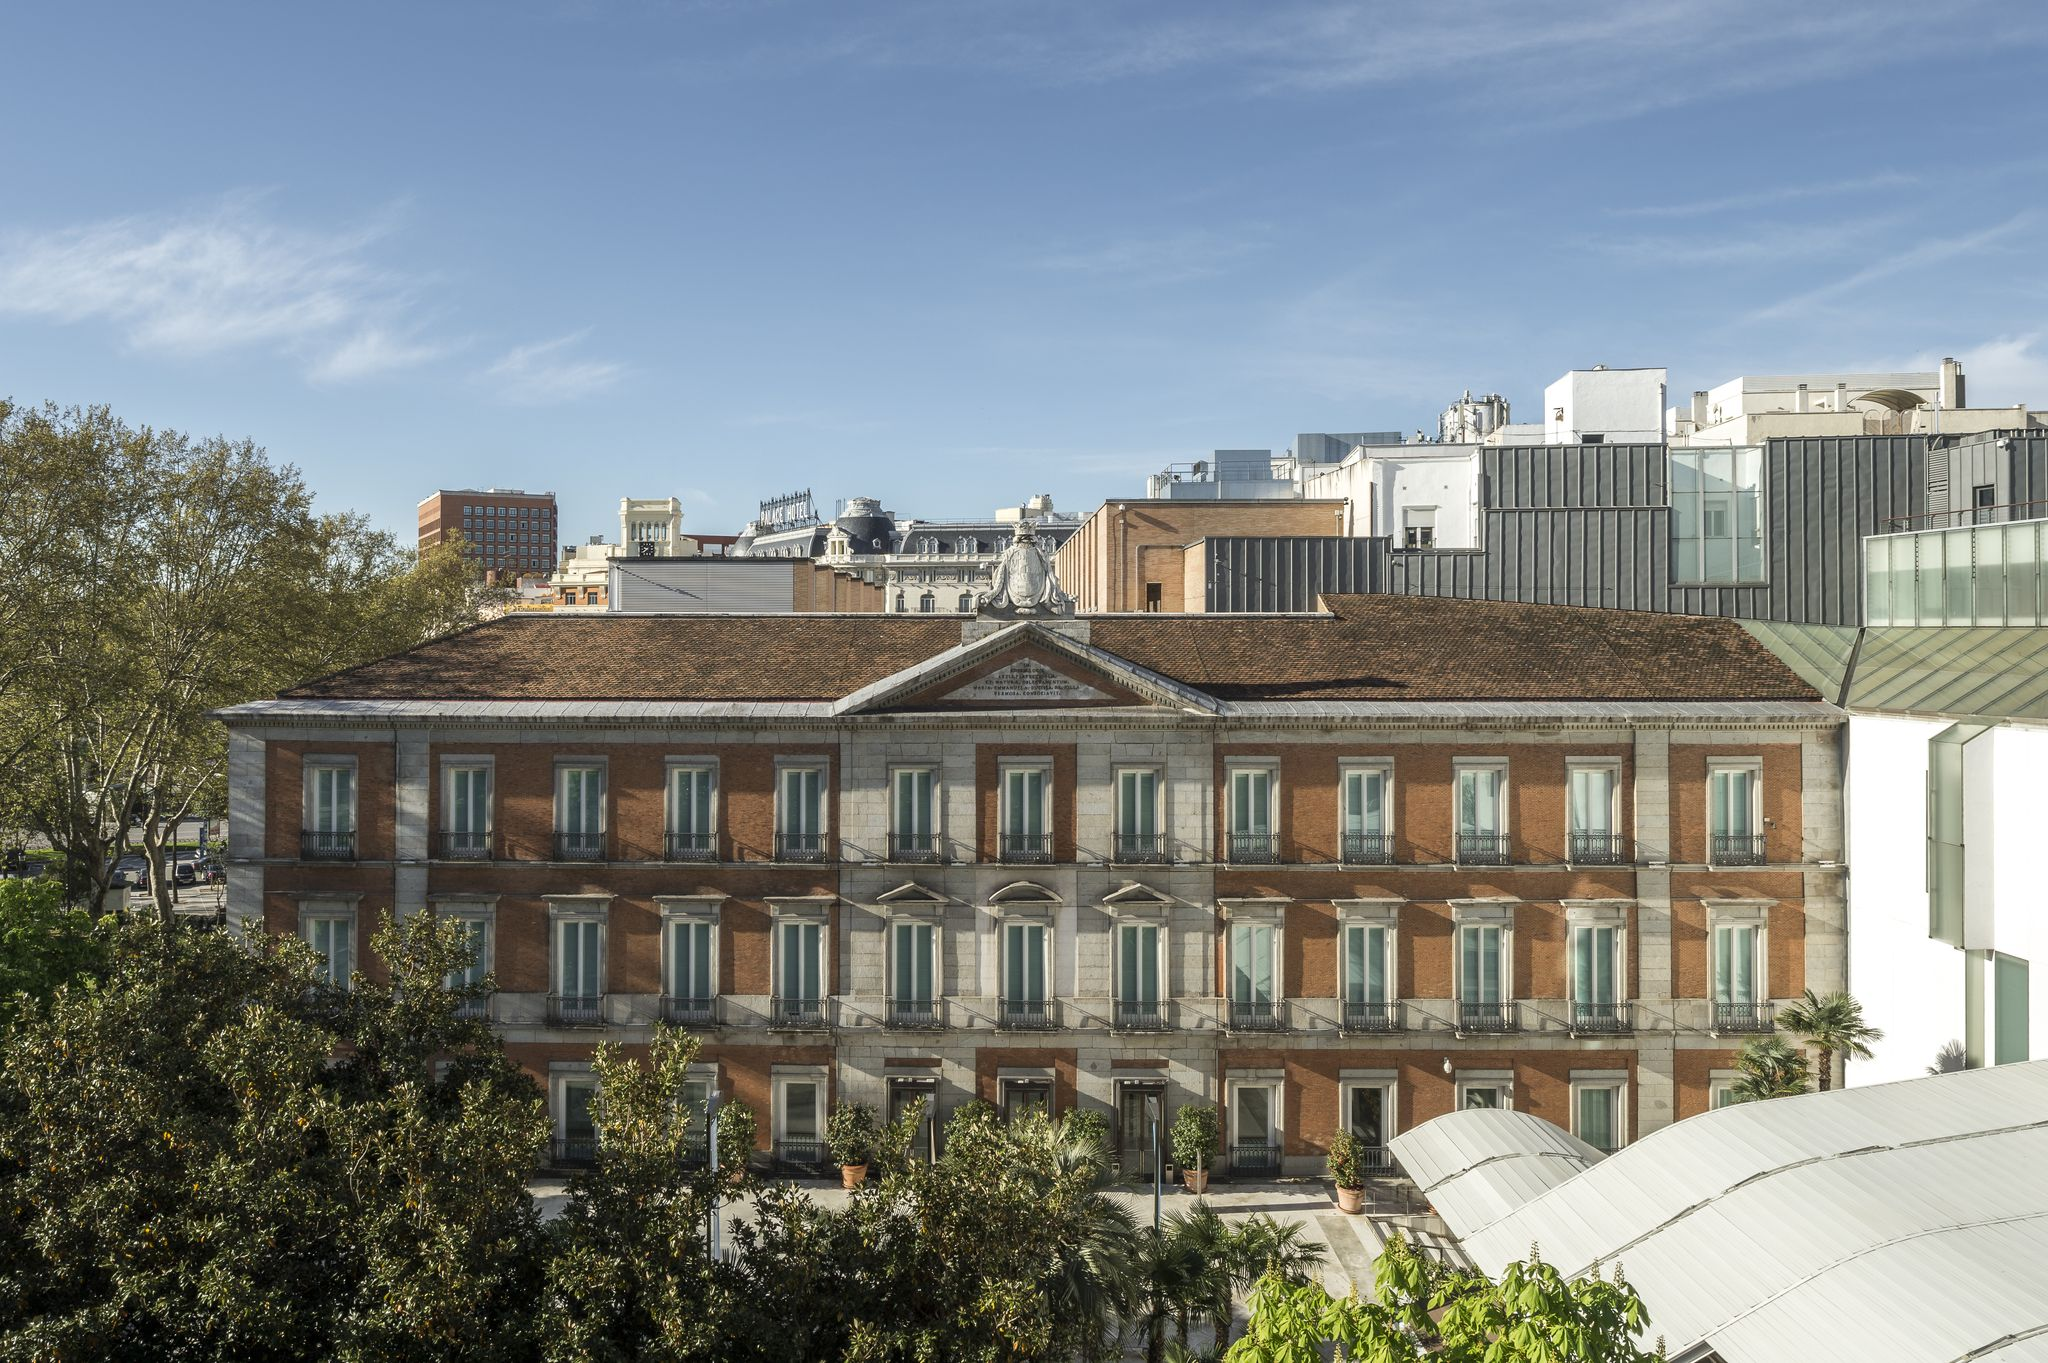 CloudGuide is proud to welcome the Thyssen-Bornemisza Museum to the CloudGuide app!